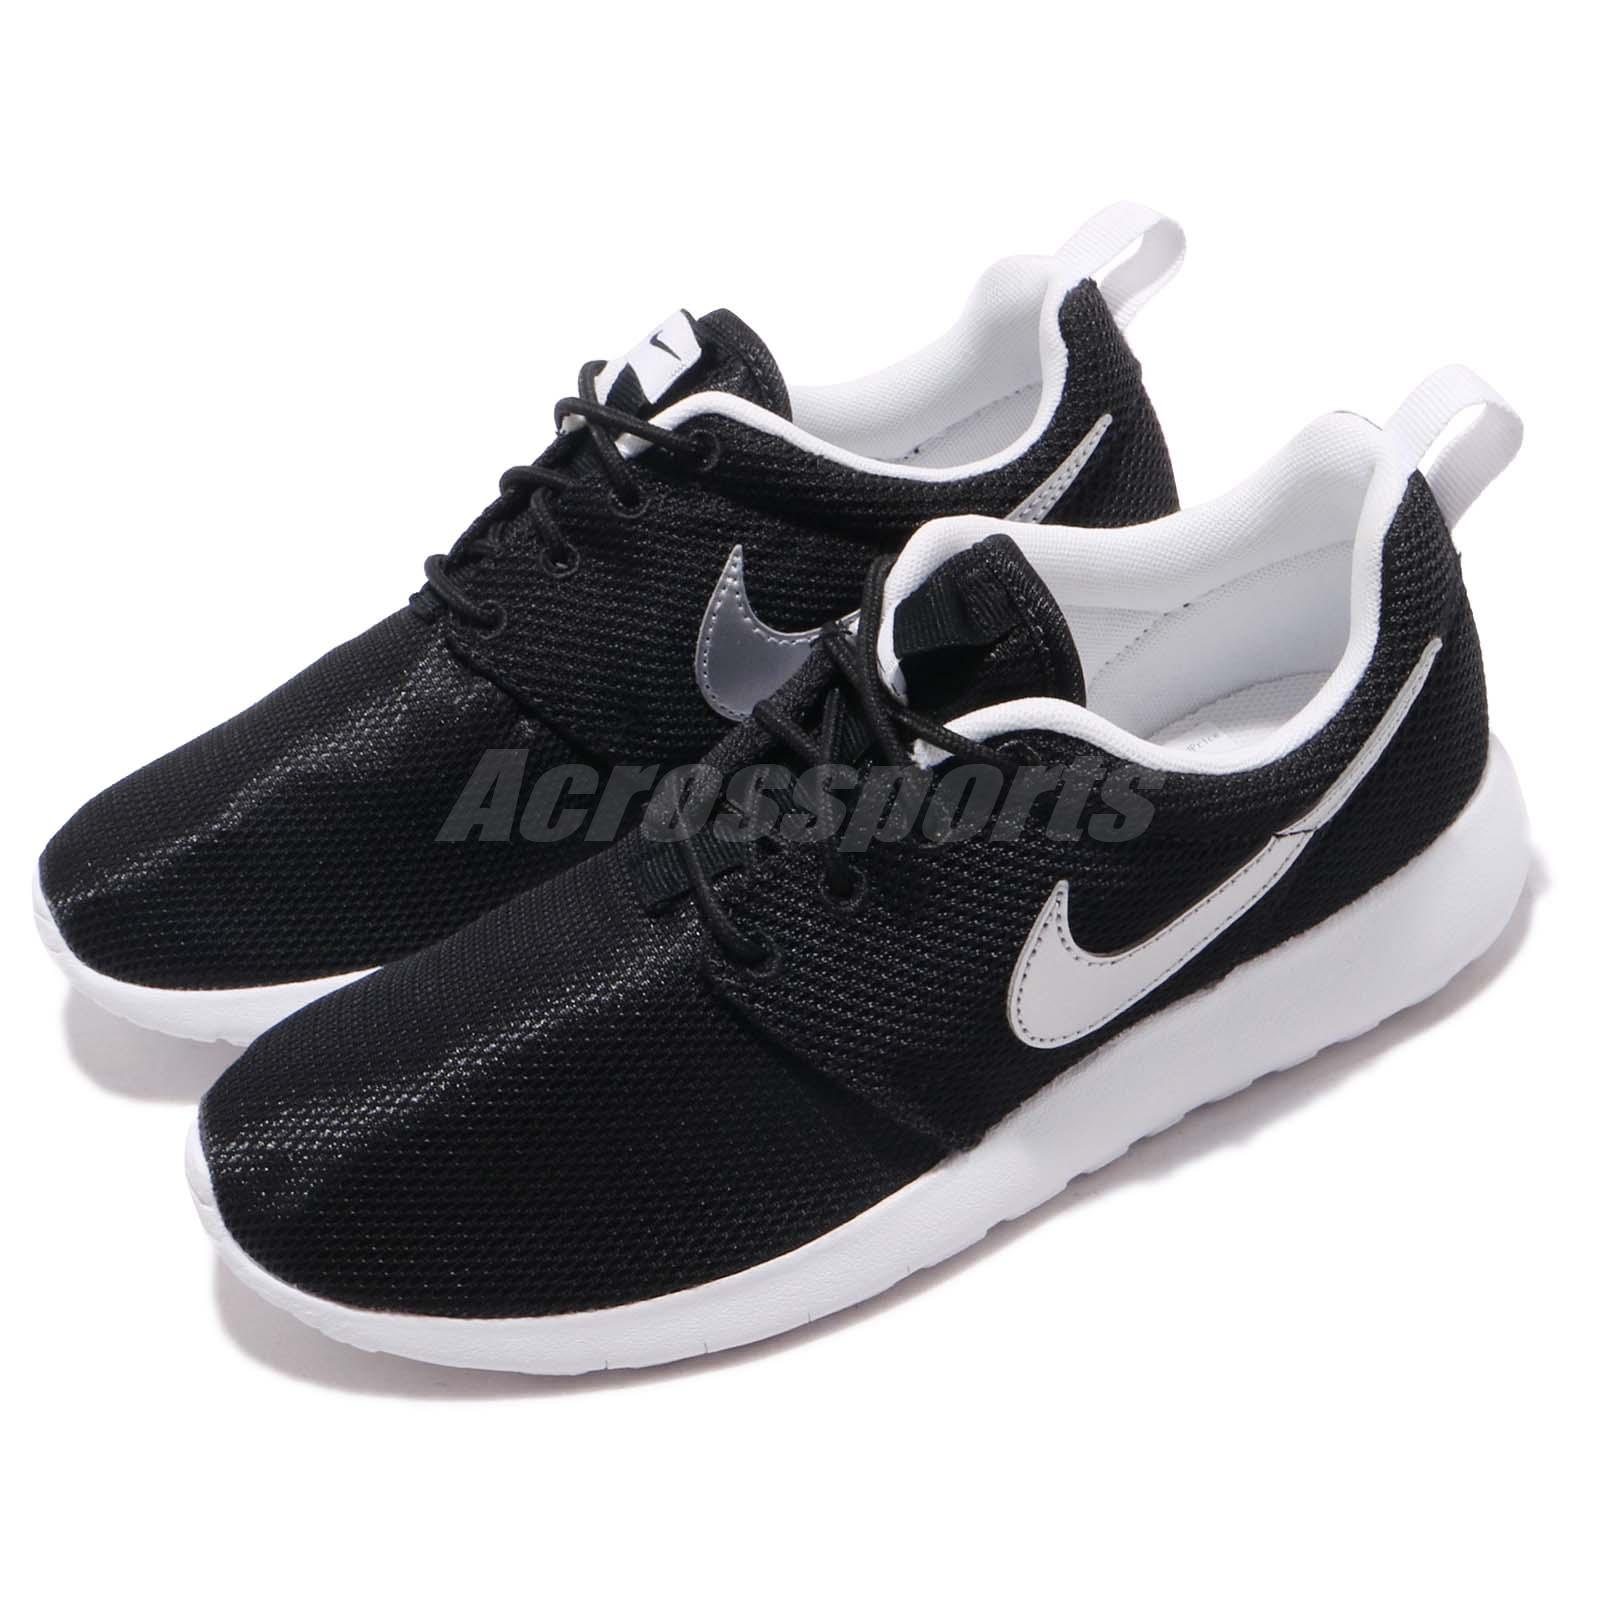 detailed look a0a58 cc551 Details about Nike Roshe One GS Black White Rosherun Kids Youth Running  Shoes 599728-021